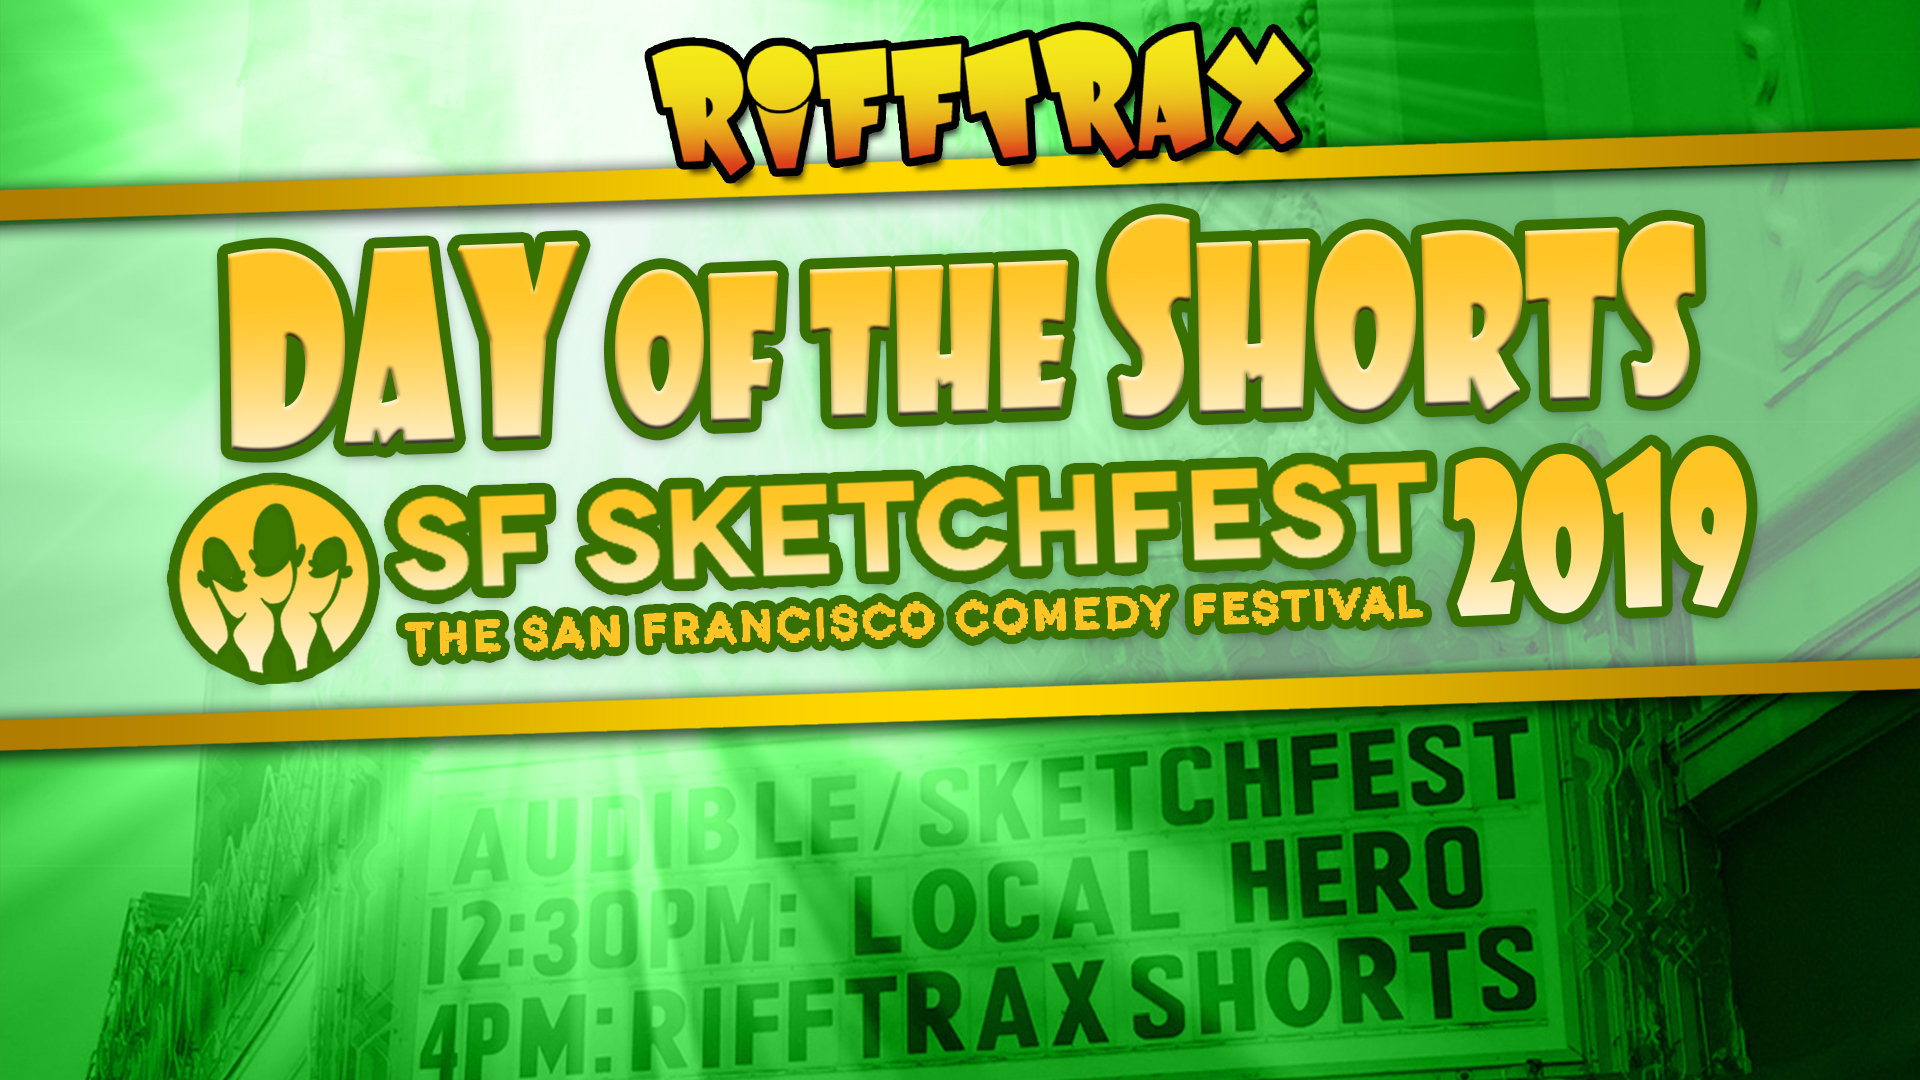 RiffTrax: Day of the Shorts: SF Sketchfest 2019